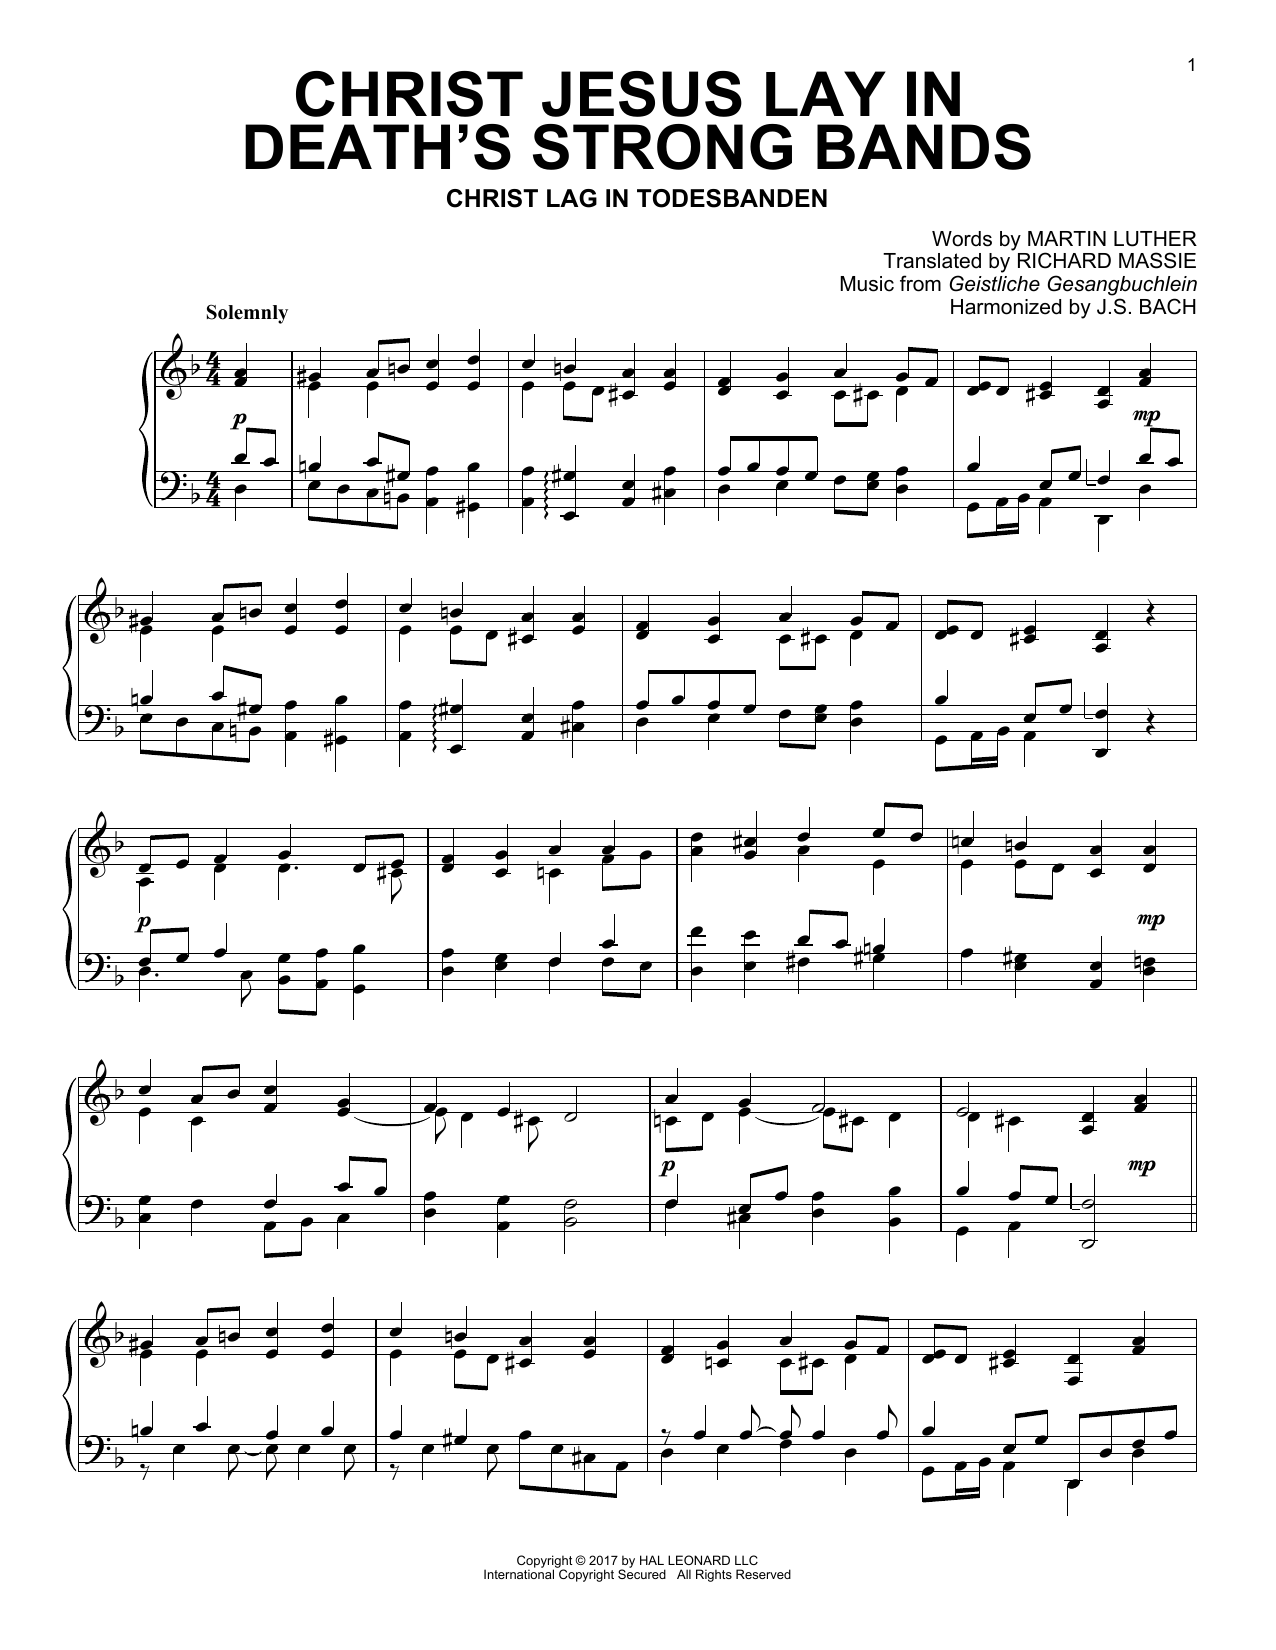 Download Geistliche Gesangbuchlein 'Christ Jesus Lay In Death's Strong Bands' Digital Sheet Music Notes & Chords and start playing in minutes